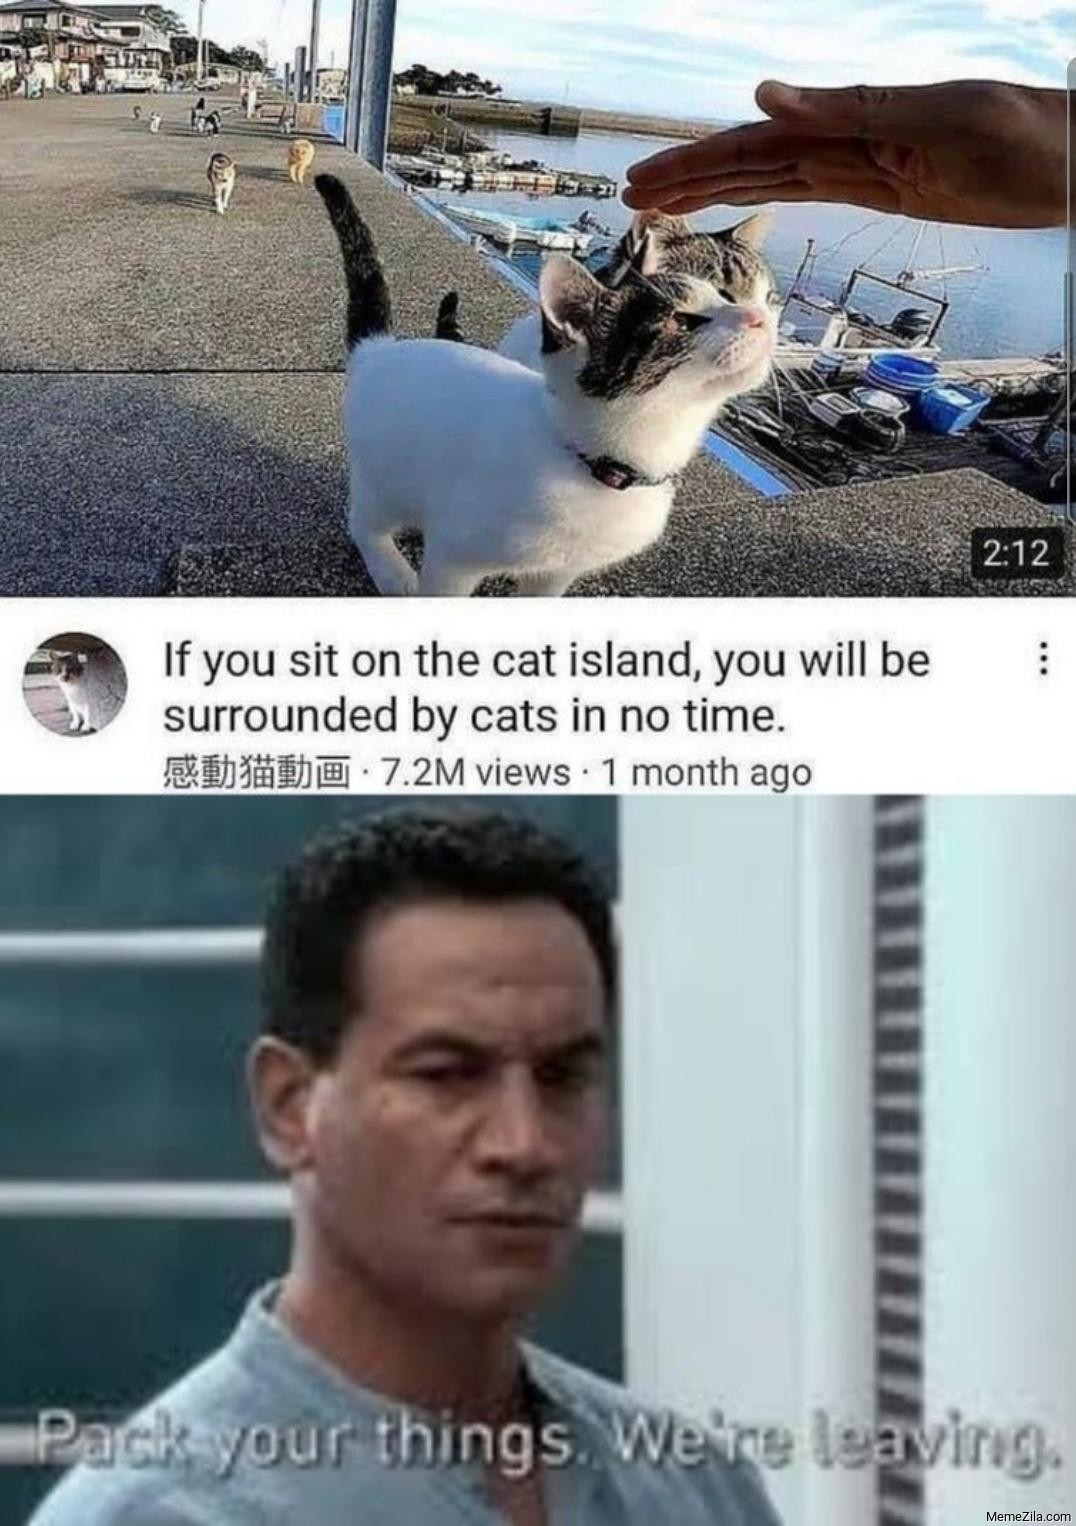 If seat on the cat Island you will be surrounded by cats in no time meme